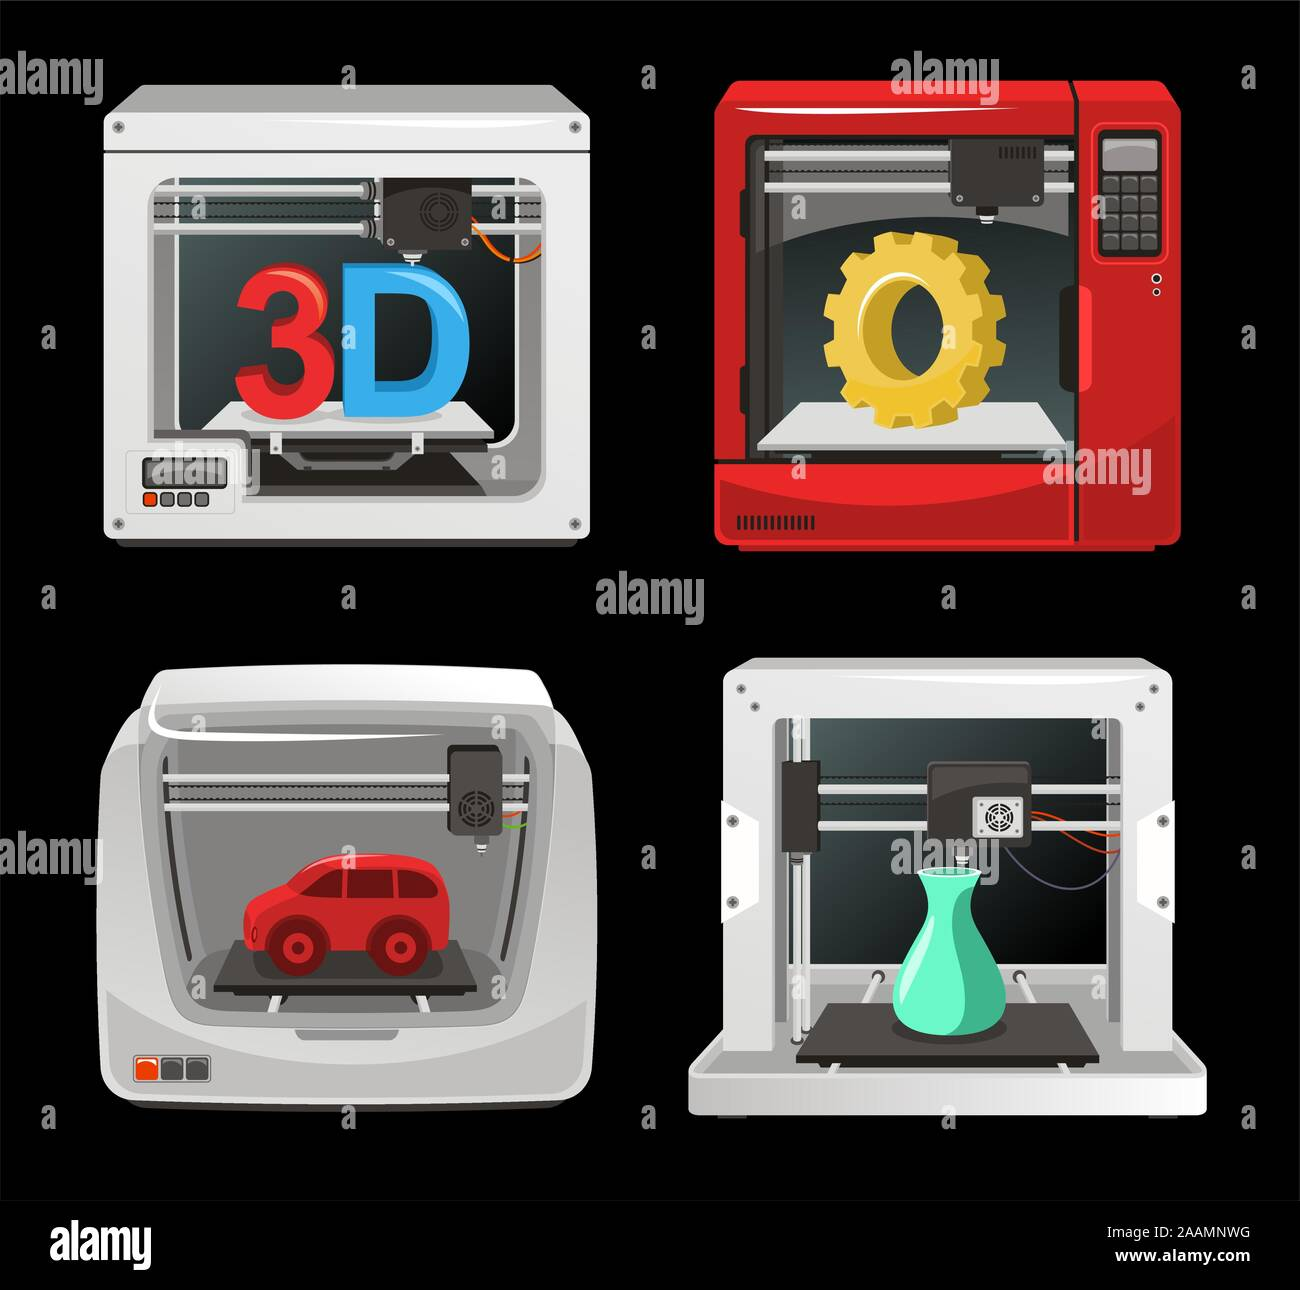 3D Printer Set, with computer software, computer three dimensional set. Digitally generated image vector illustration cartoon. Stock Vector